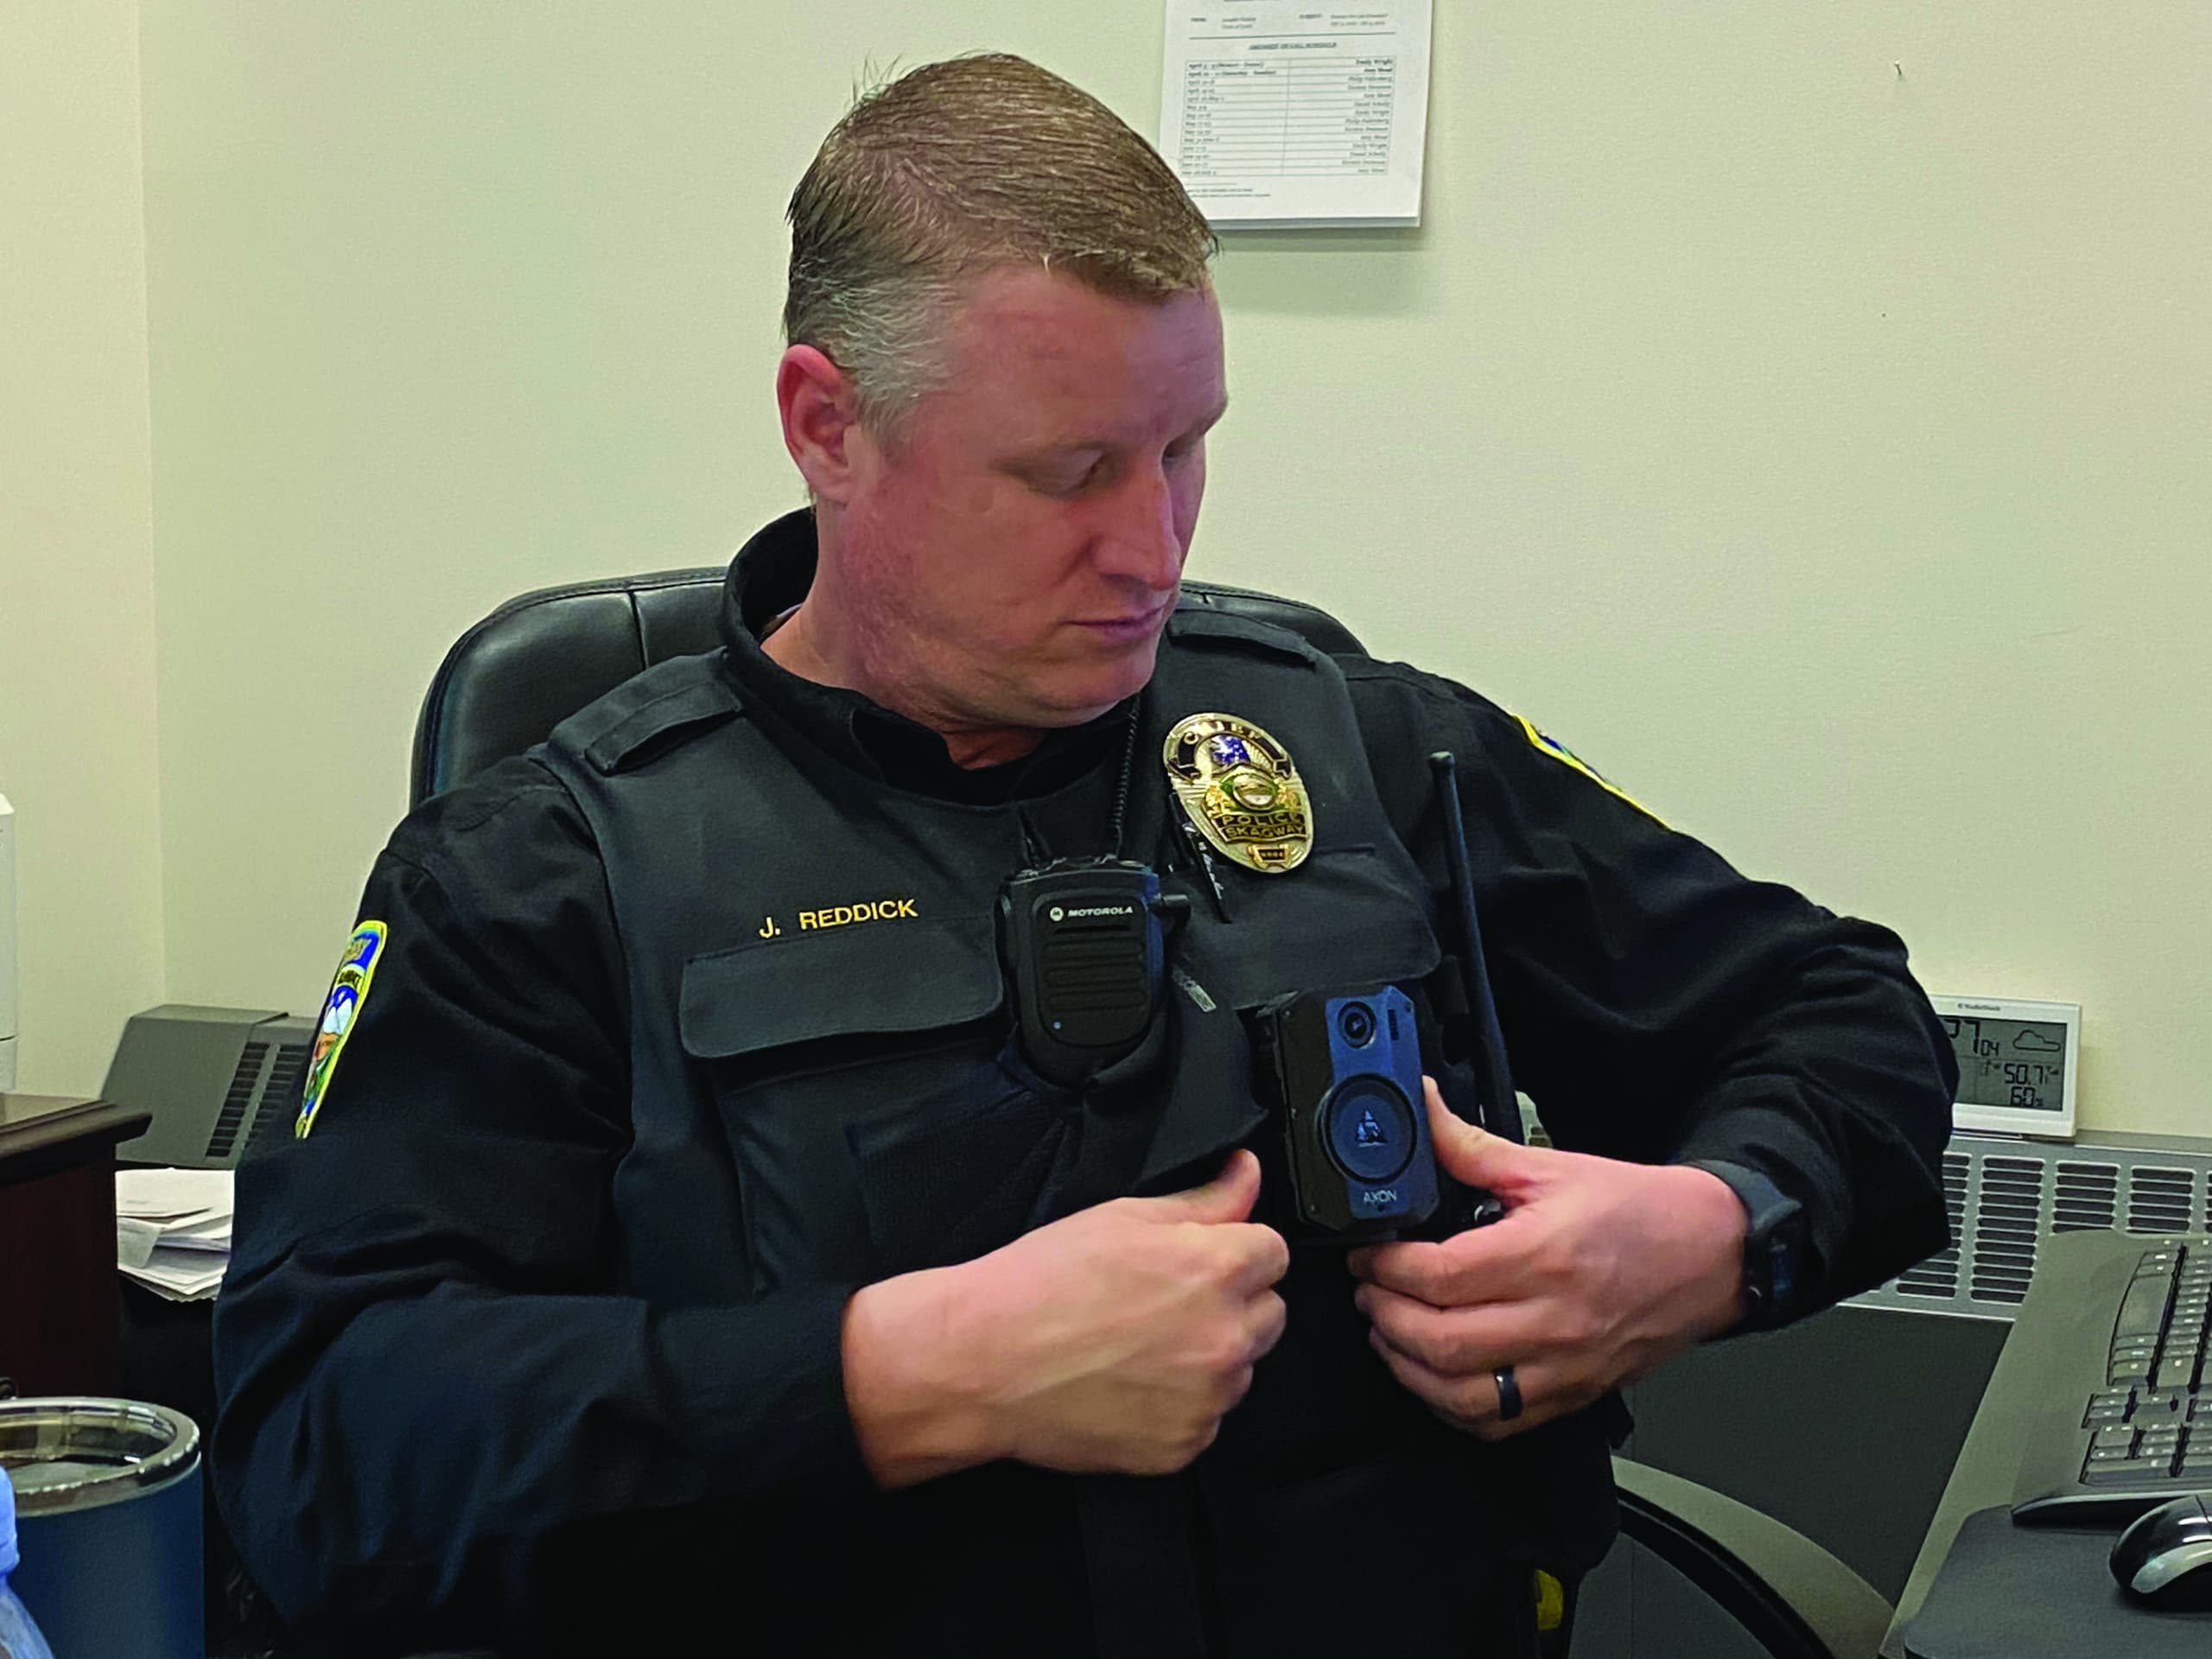 Skagway police carry body cams